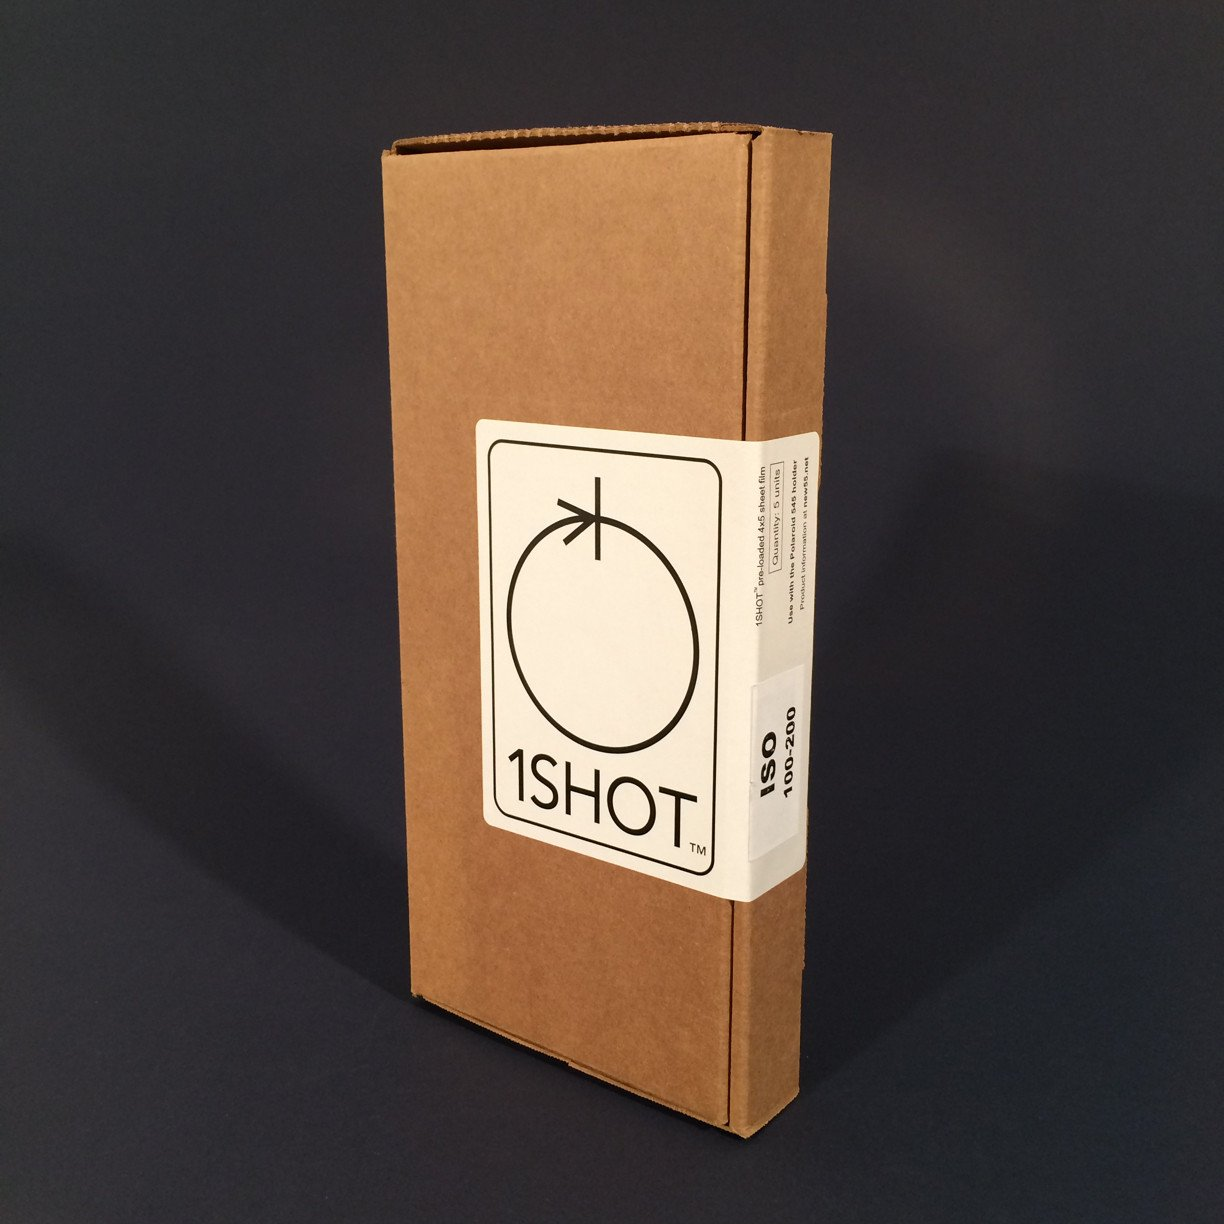 1SHOT Ready Loaded Sheet Film – The (Famous) Large & Small